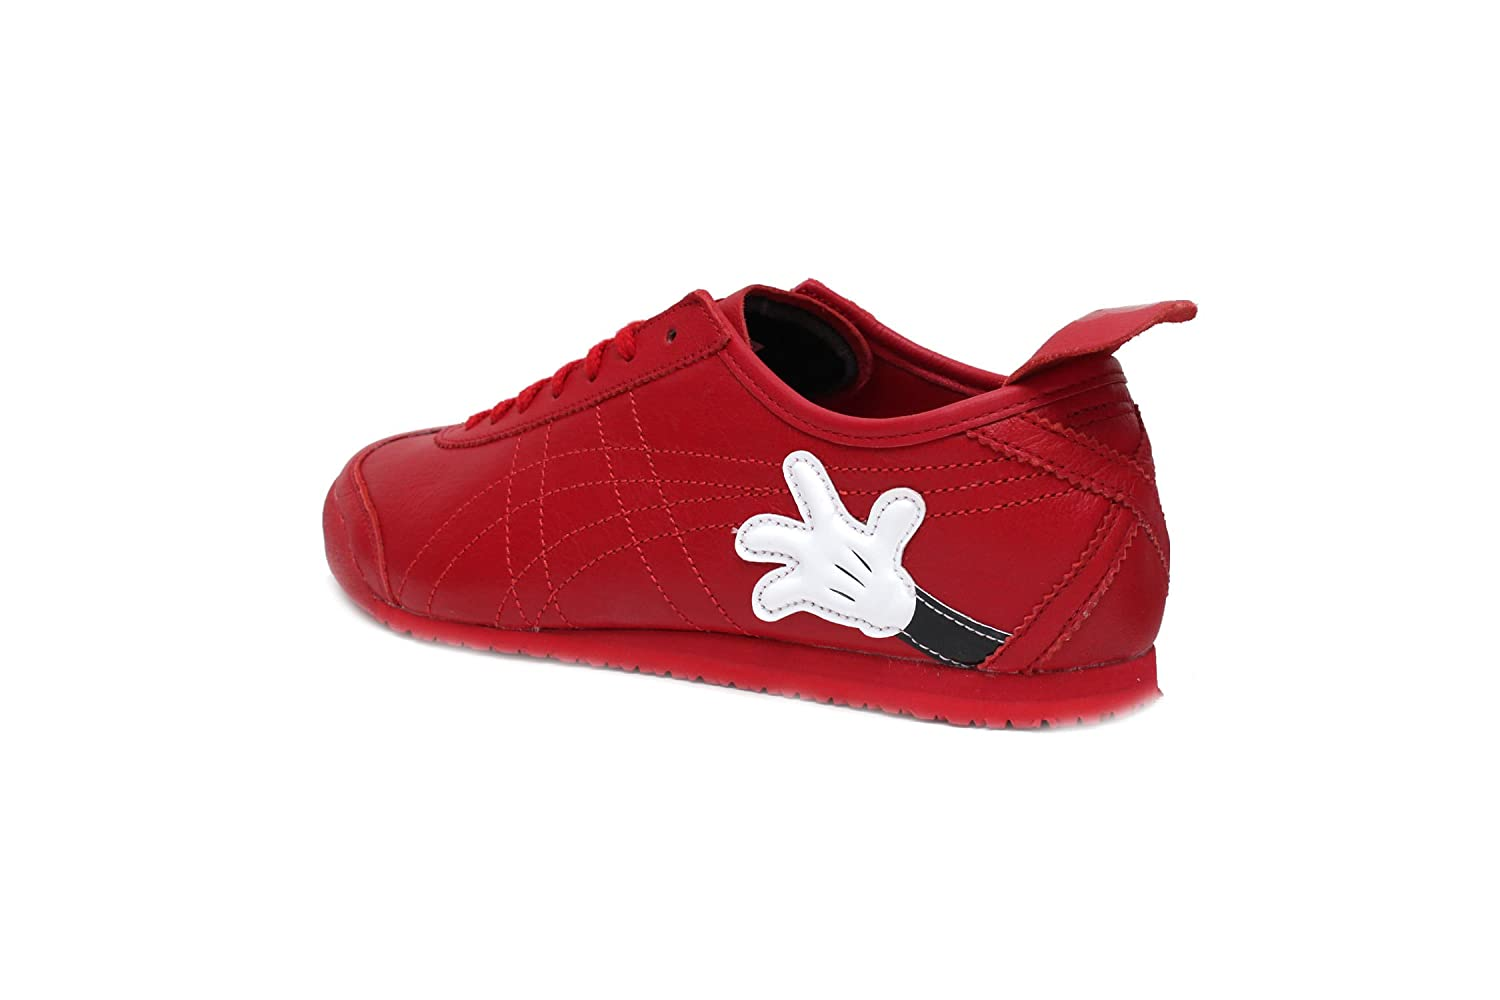 0f9919bca1a7 Amazon.com  Onitsuka Tiger Mexico 66 - Disney (Mickey Mouse) in Classic  Red Classic Red by